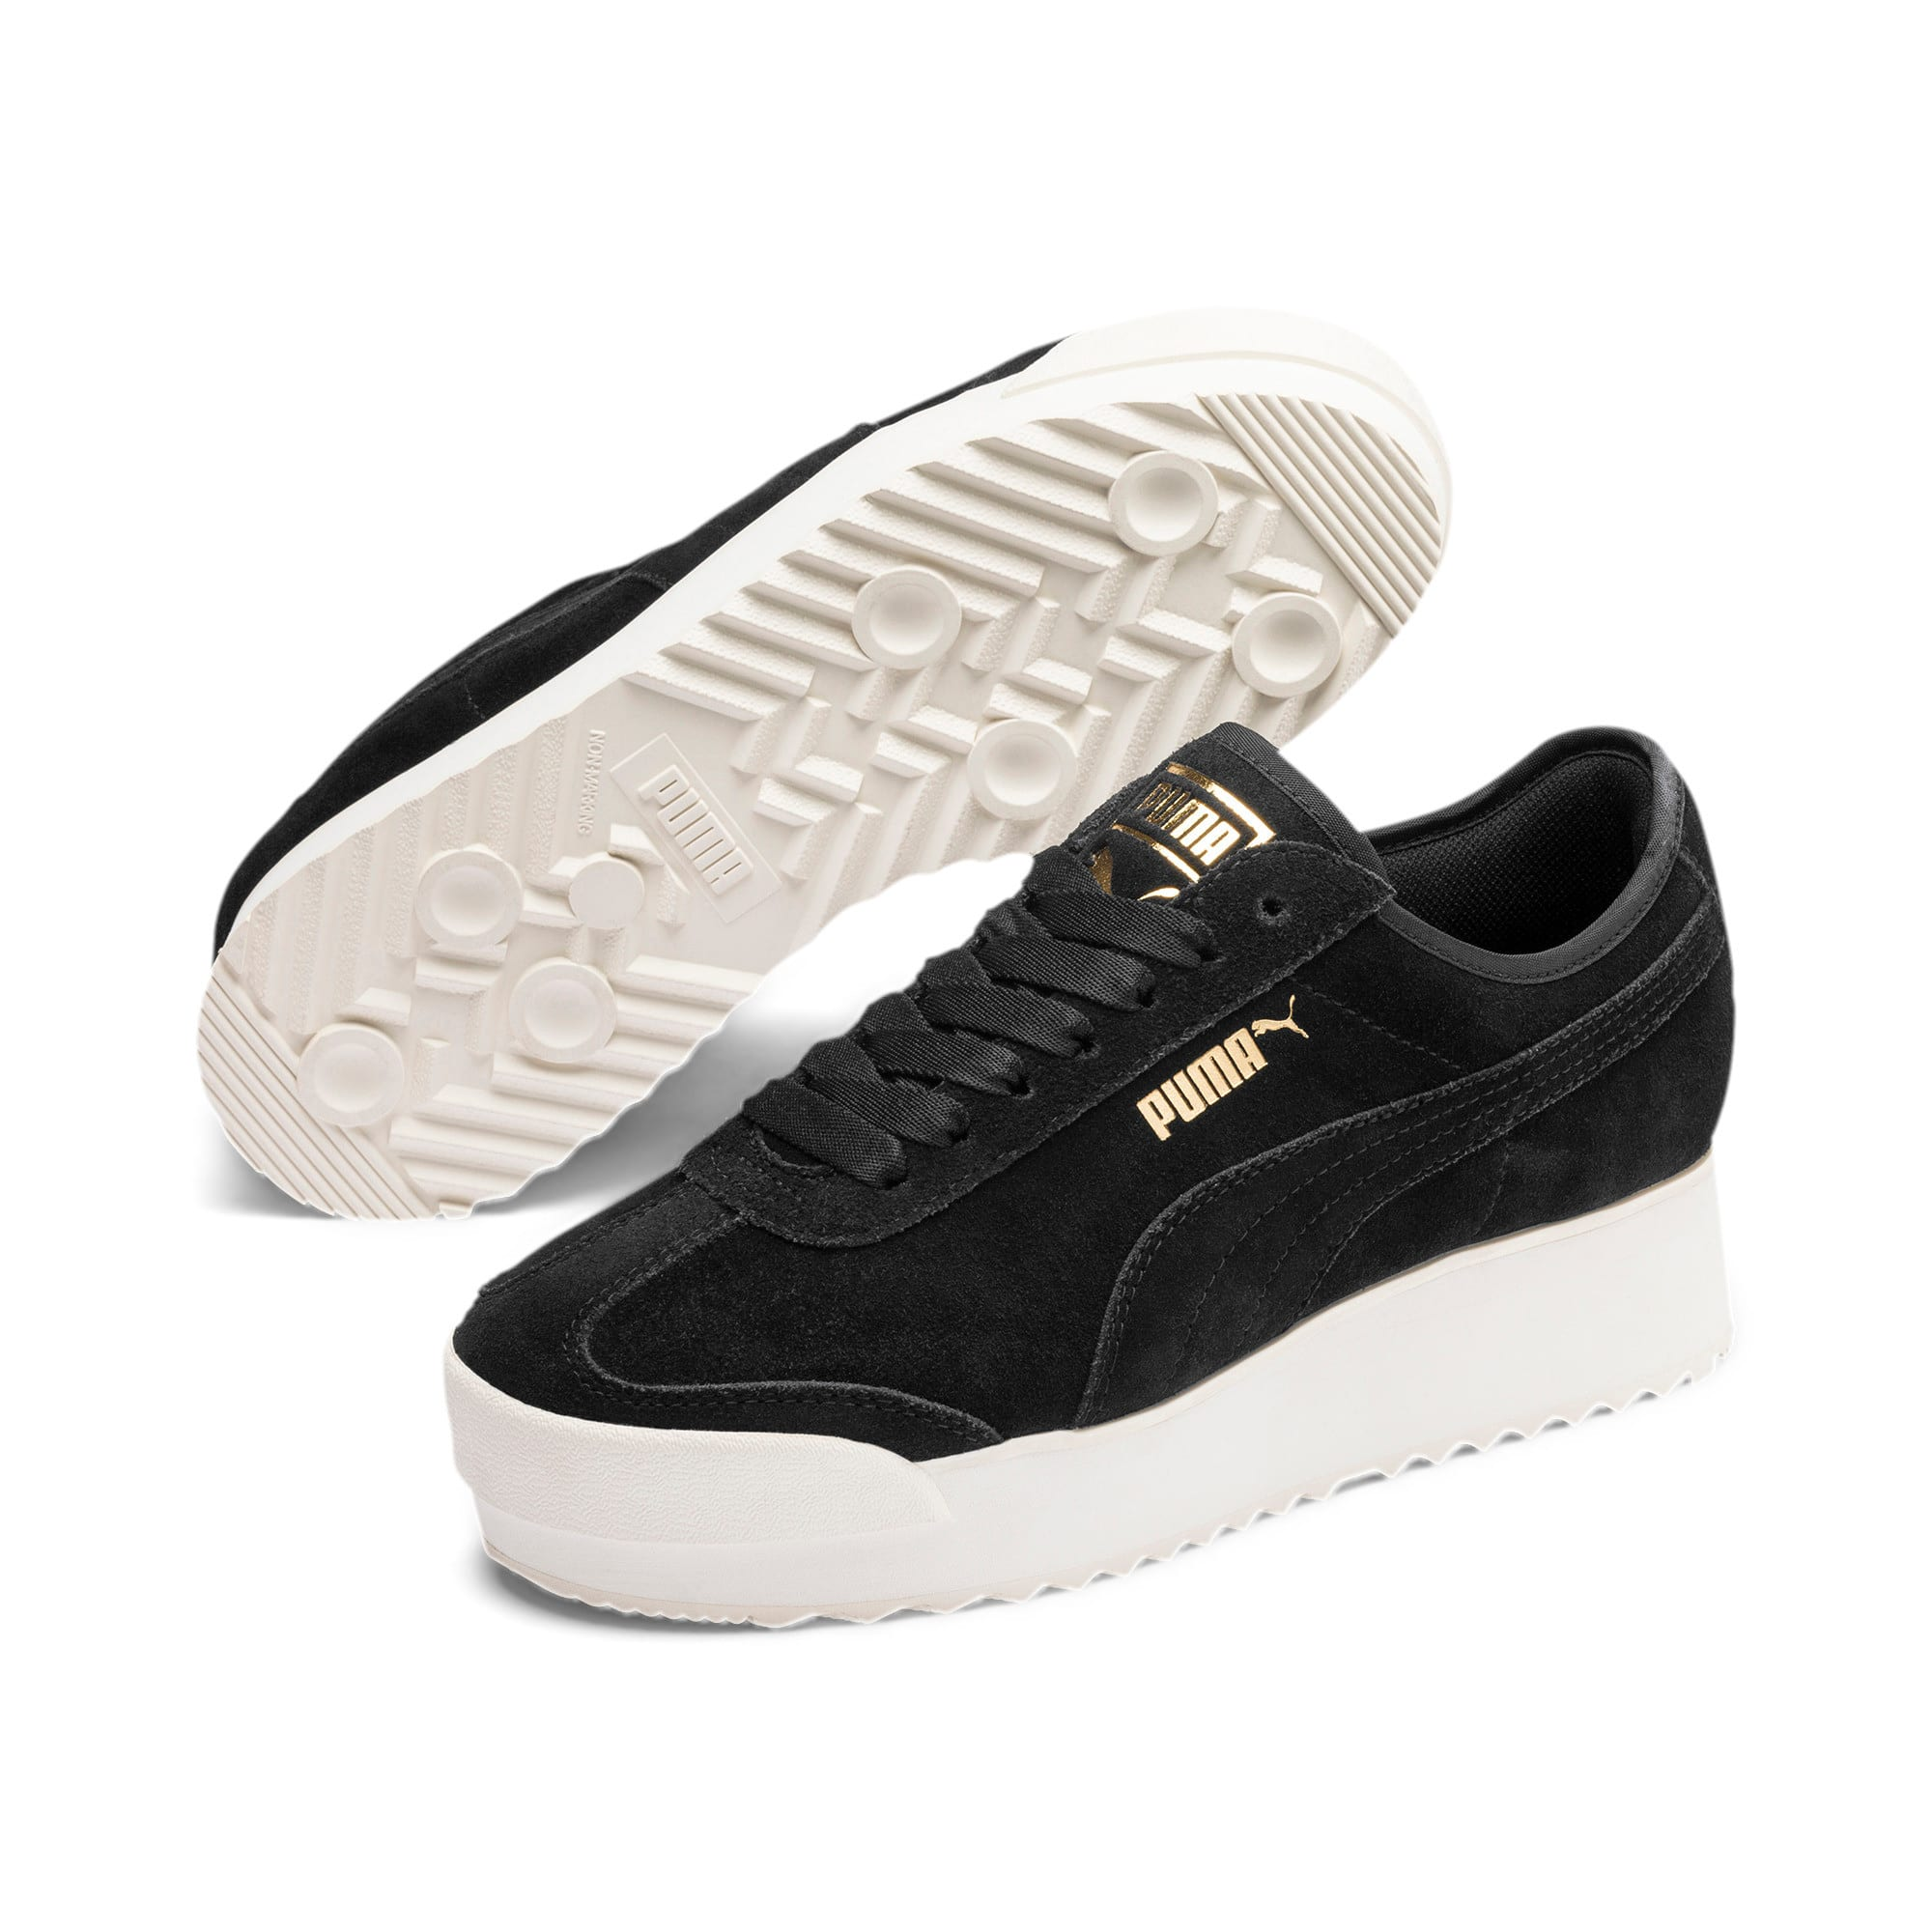 Thumbnail 3 of Roma Amor Suede Women's Trainers, Puma Black-Puma Team Gold, medium